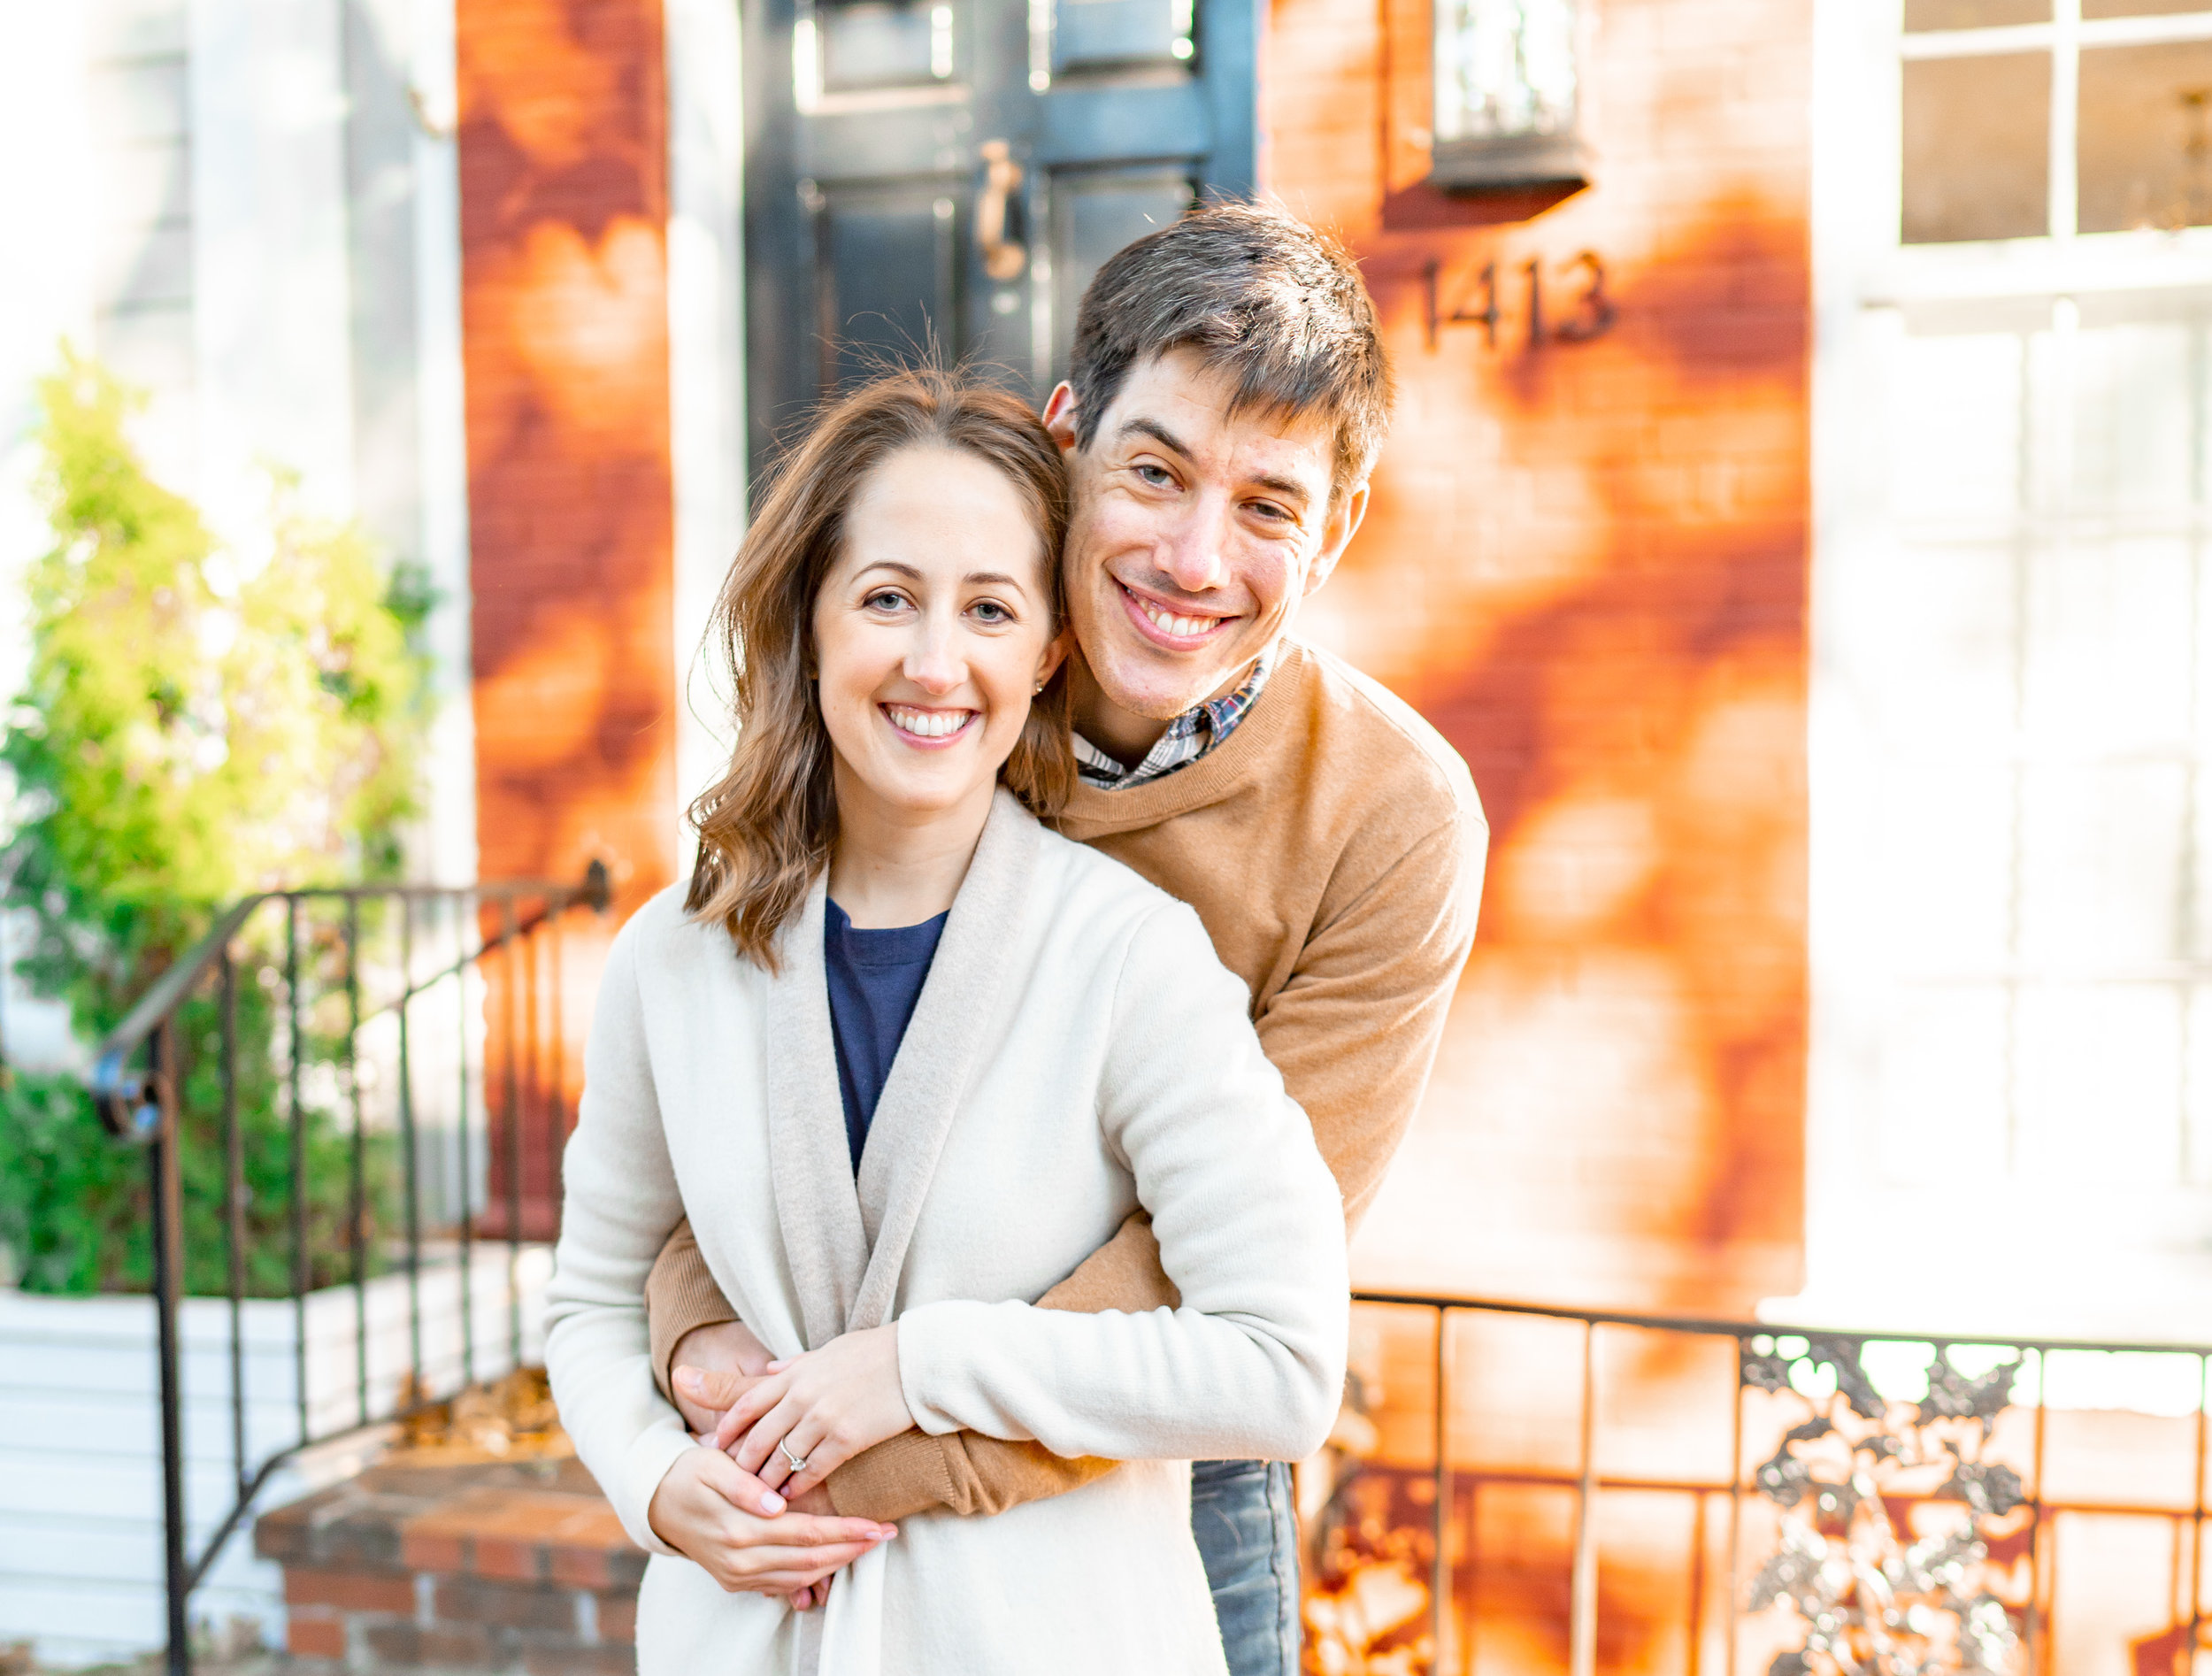 Bride and groom during engagement shoot in front of colorful Georgetown townhouses